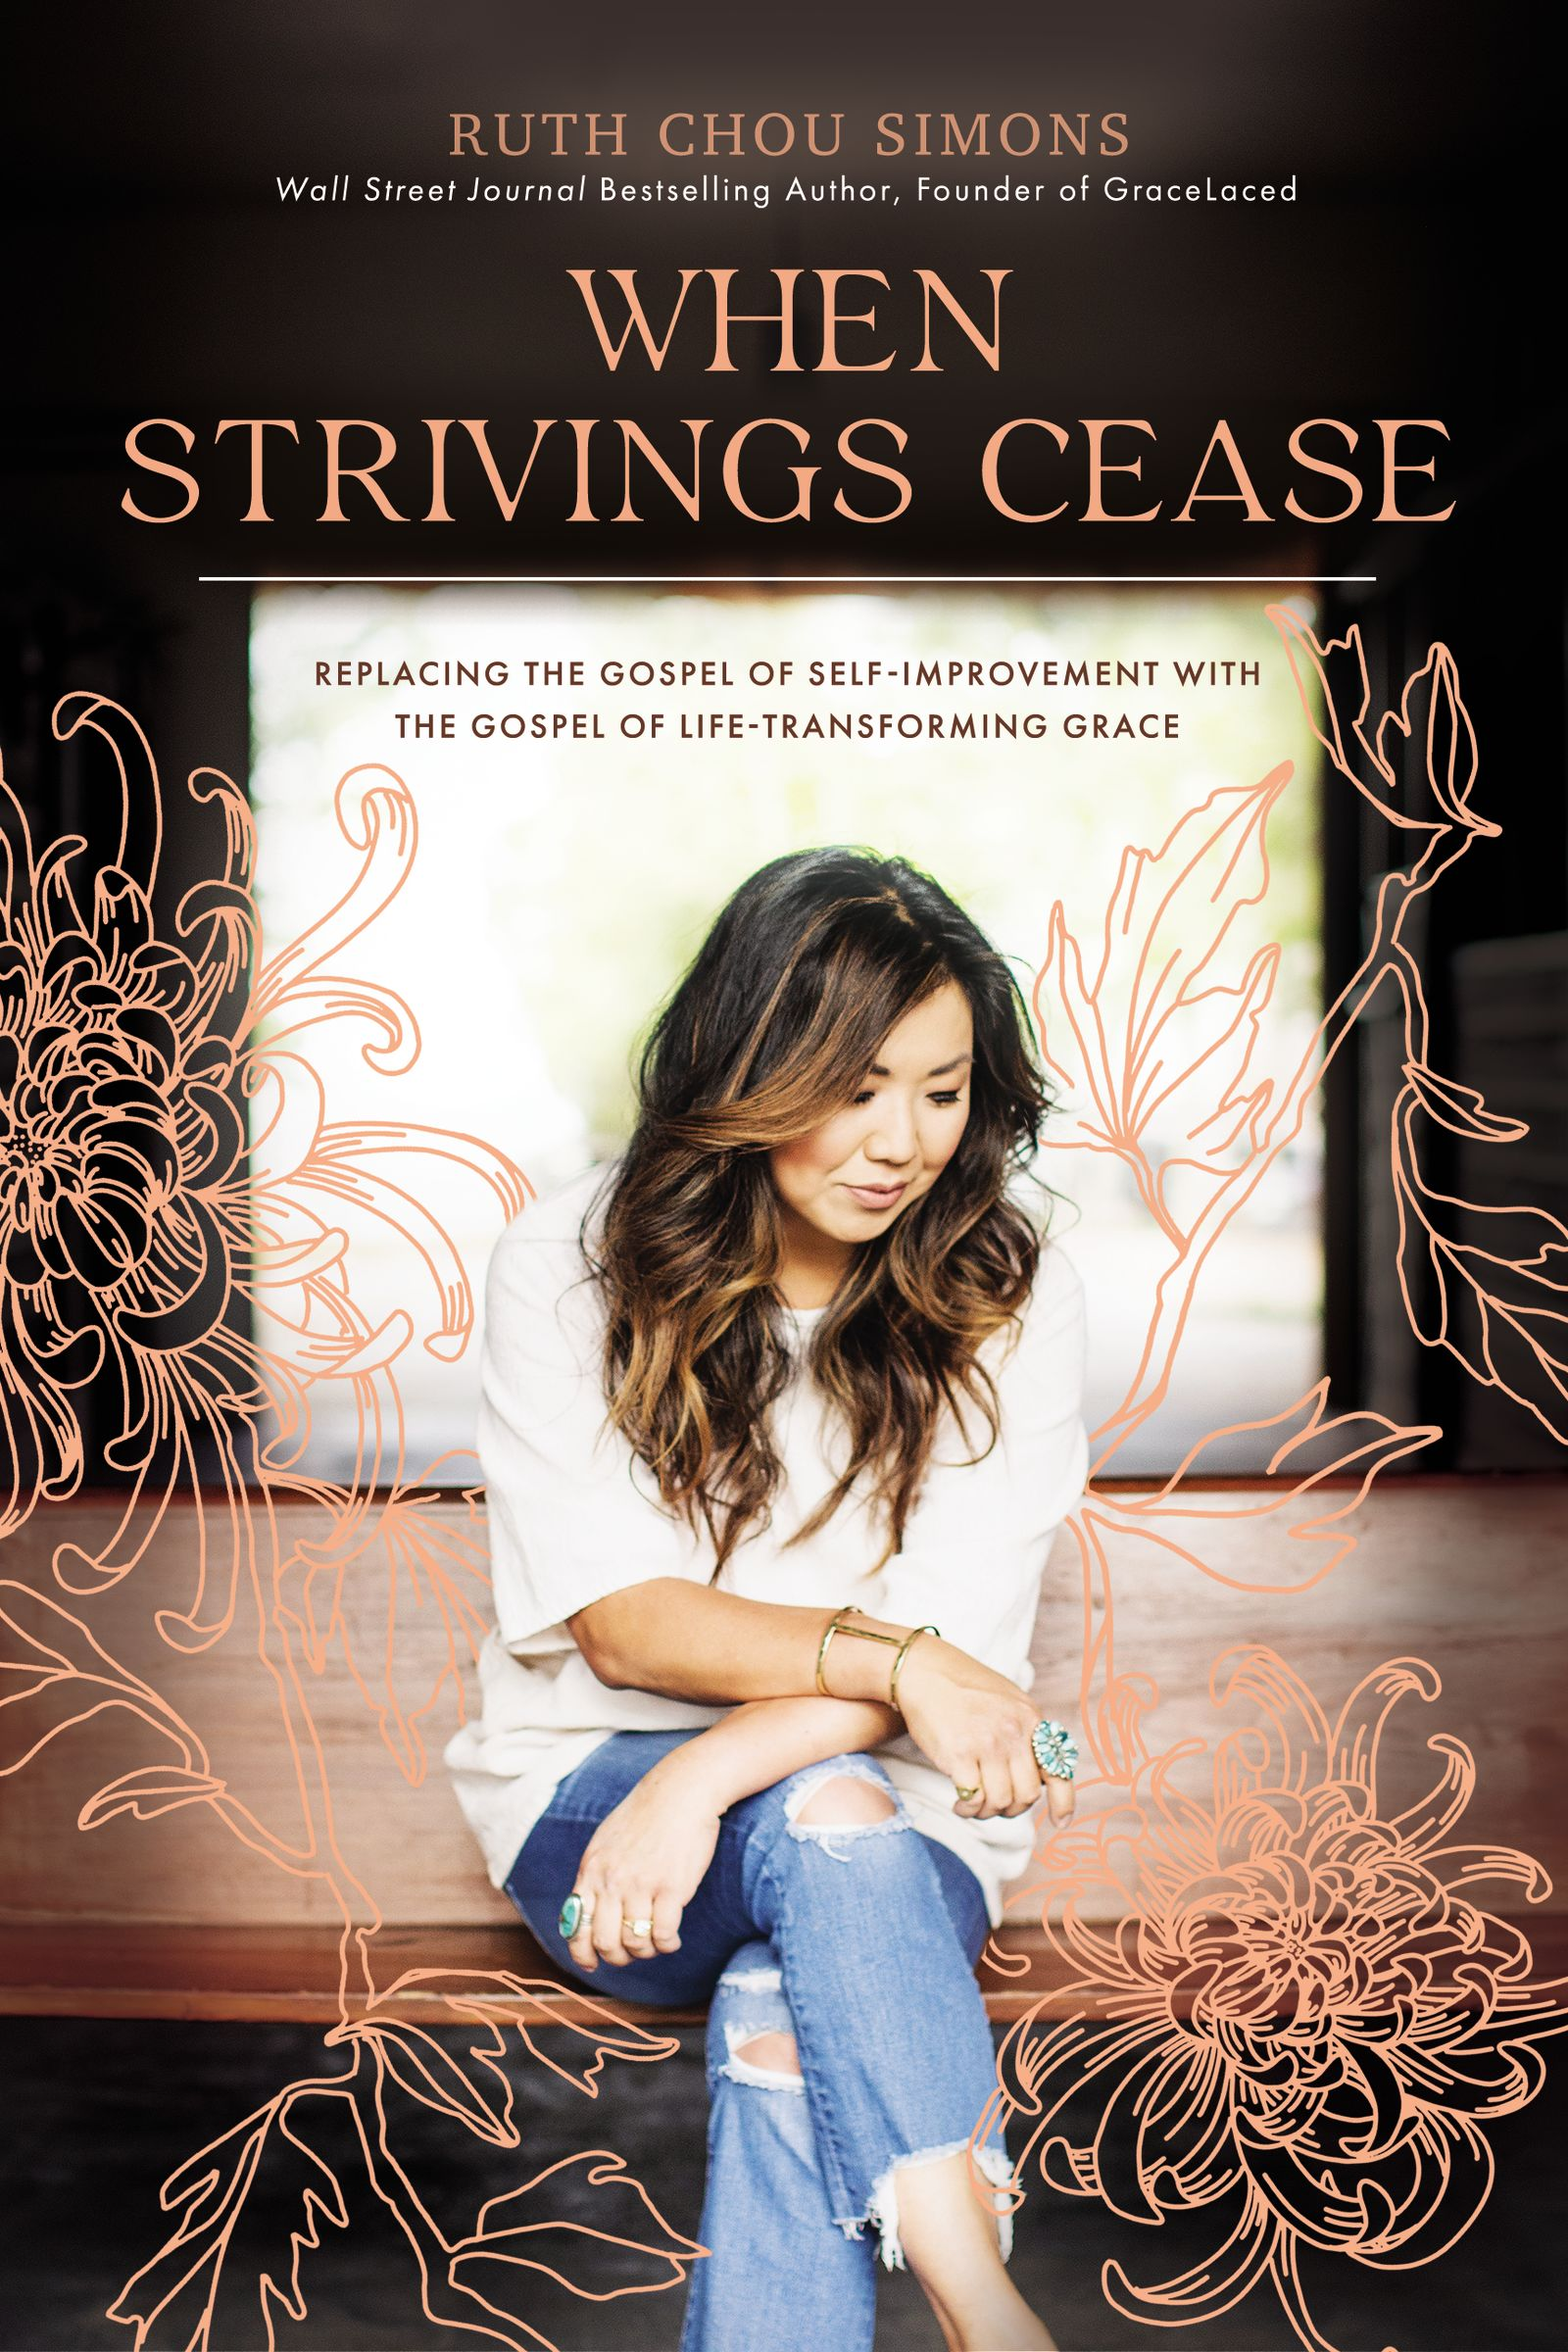 When Strivings Cease by Ruth Chou Simons